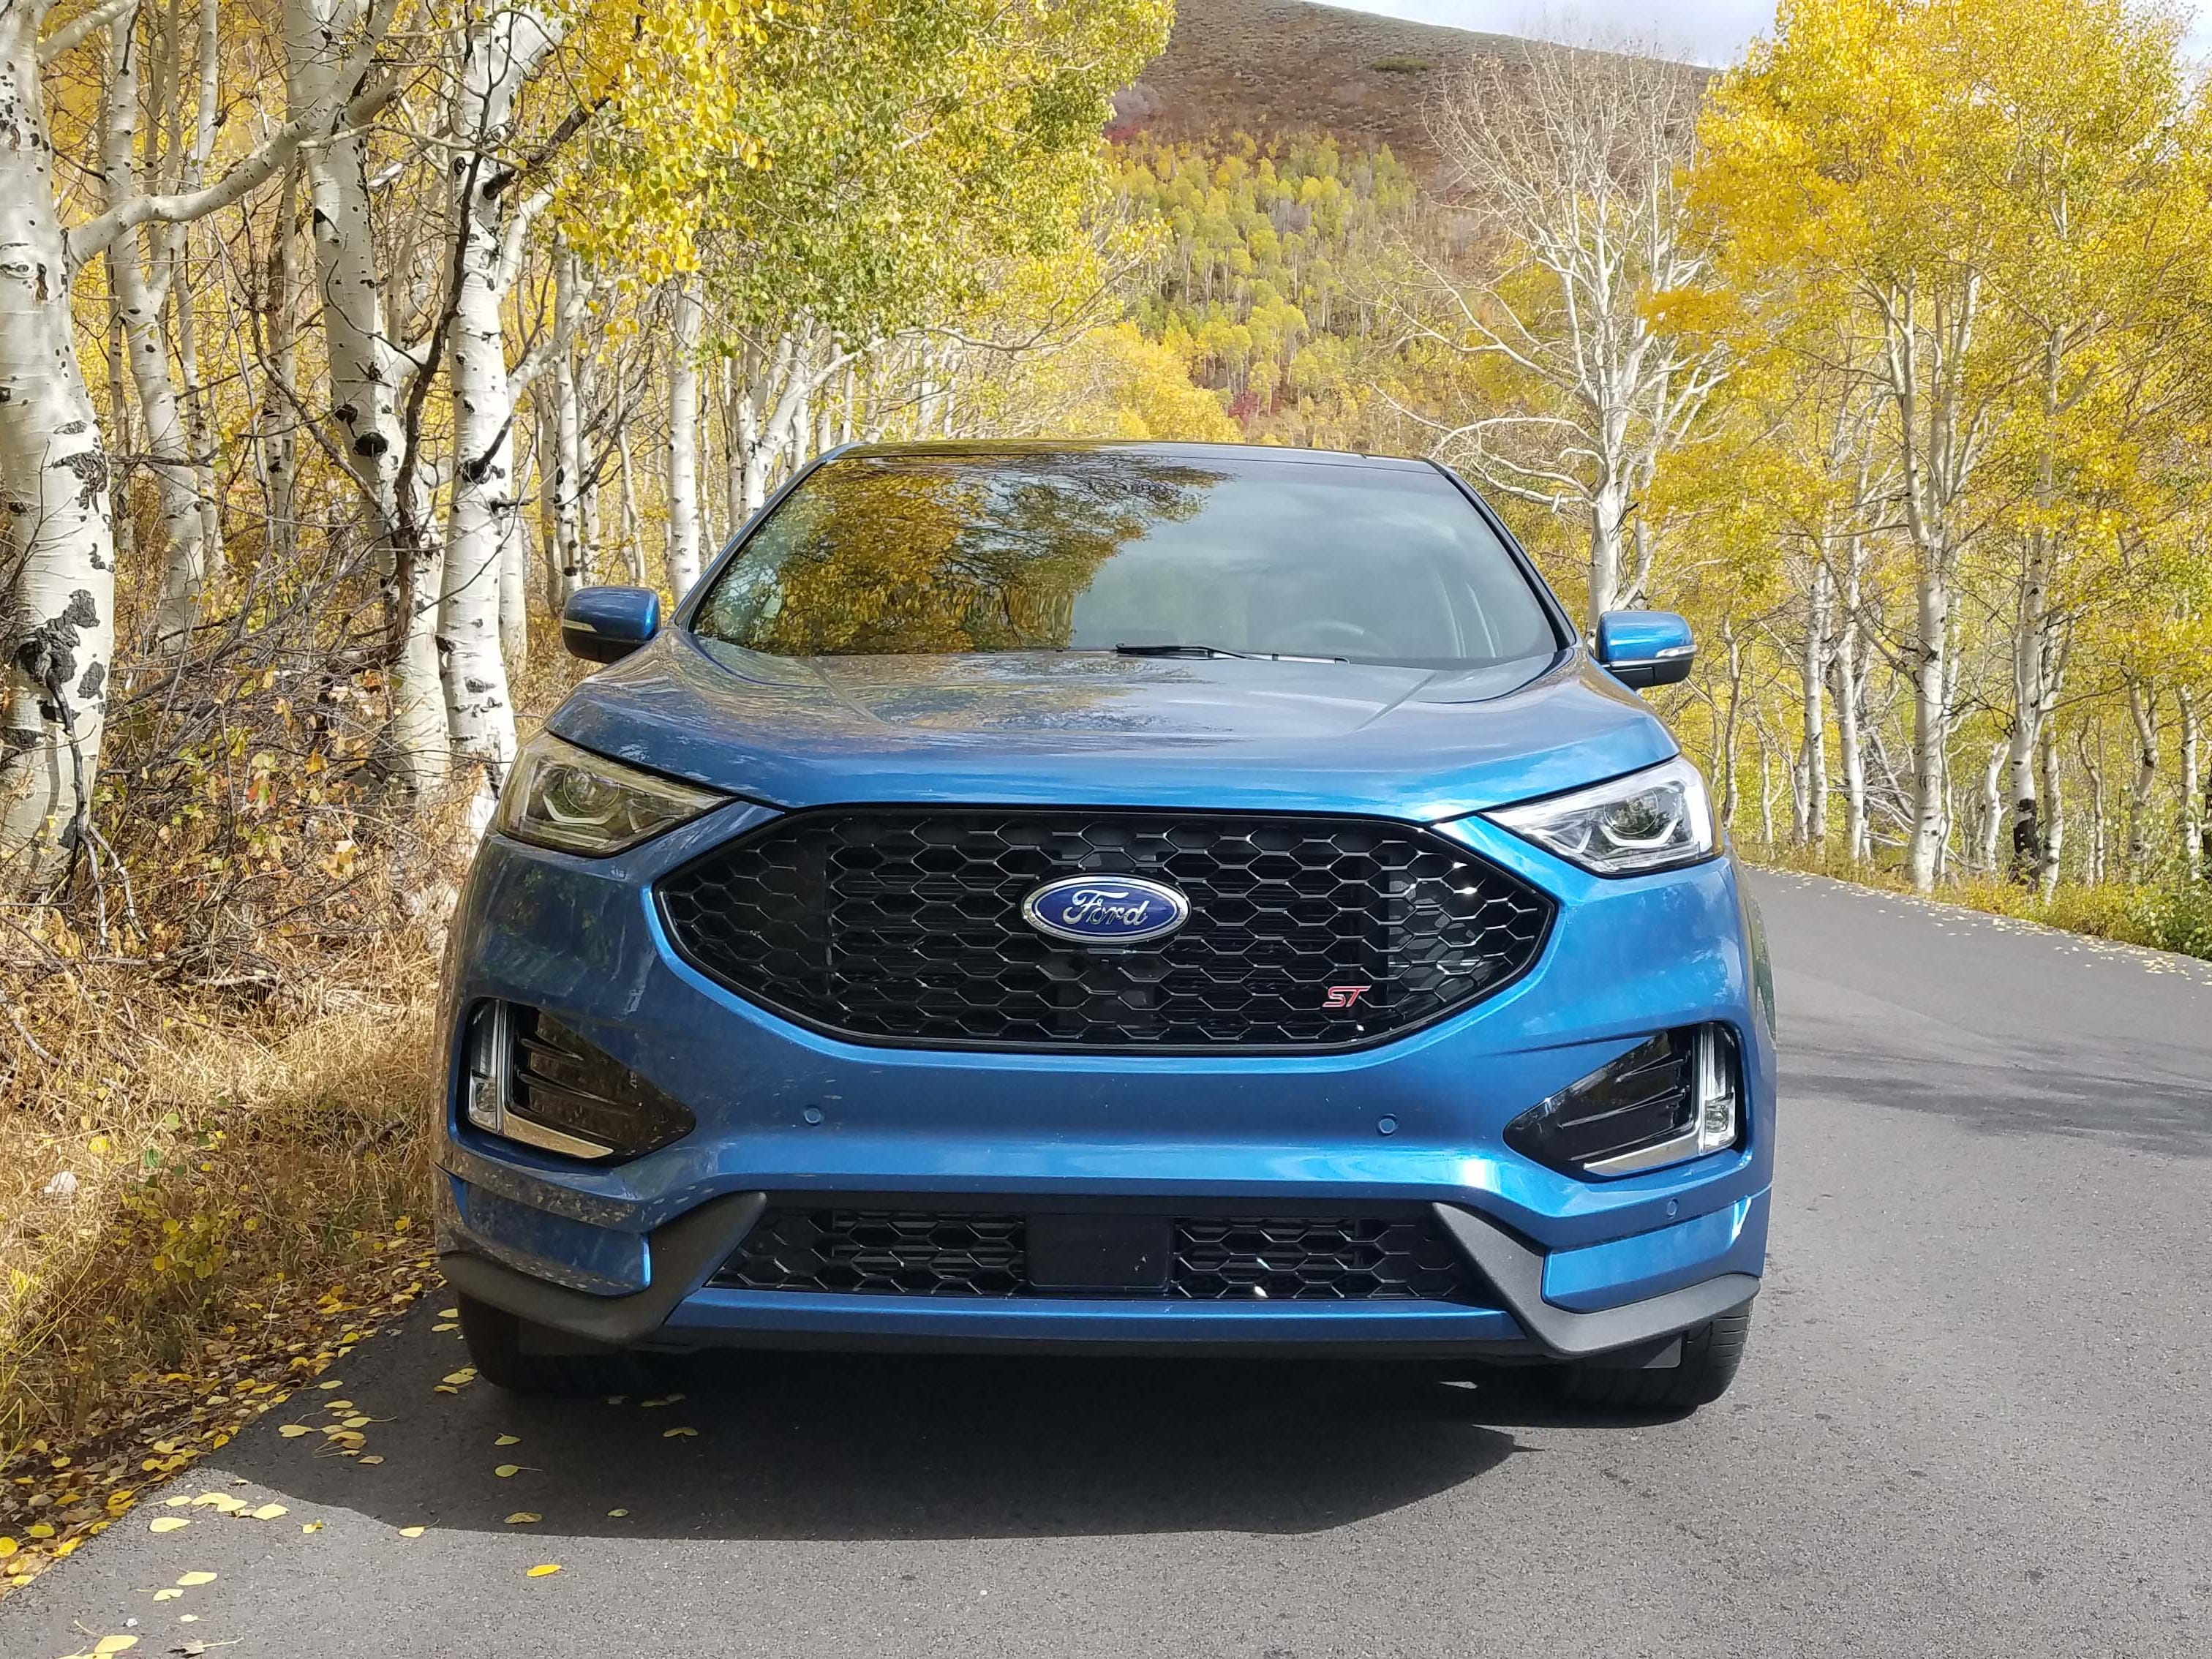 The 2019 Ford Edge ST's front fascia is different than the standard Edge with a black grille and lower intake.